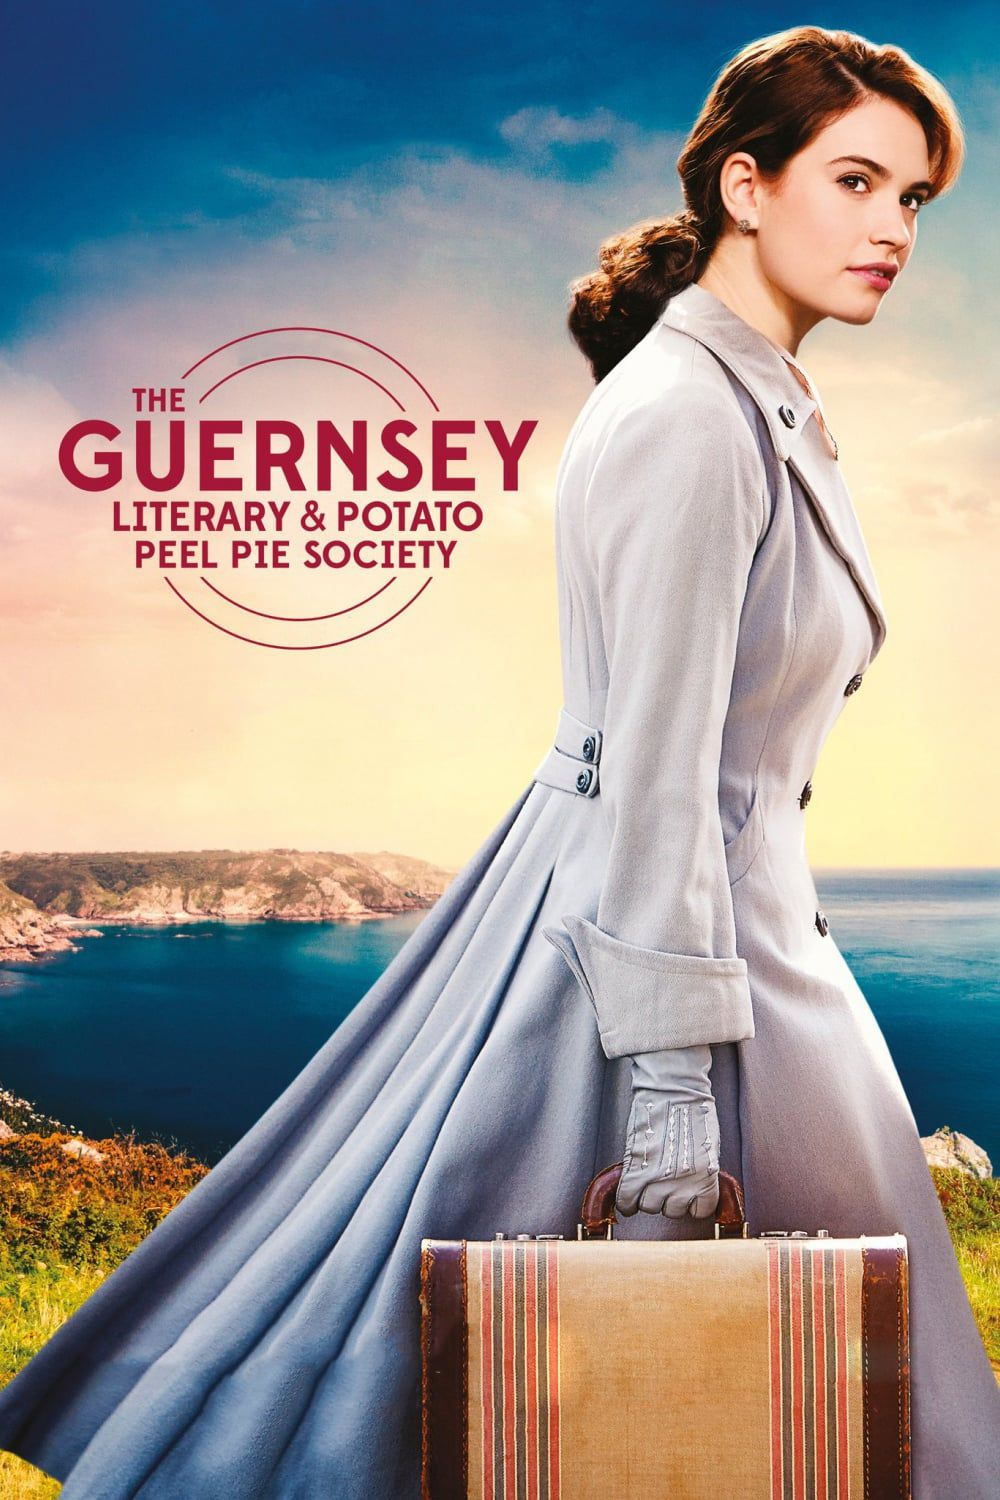 Le Cercle littéraire (Mike Newell), 2018 The Guernsey